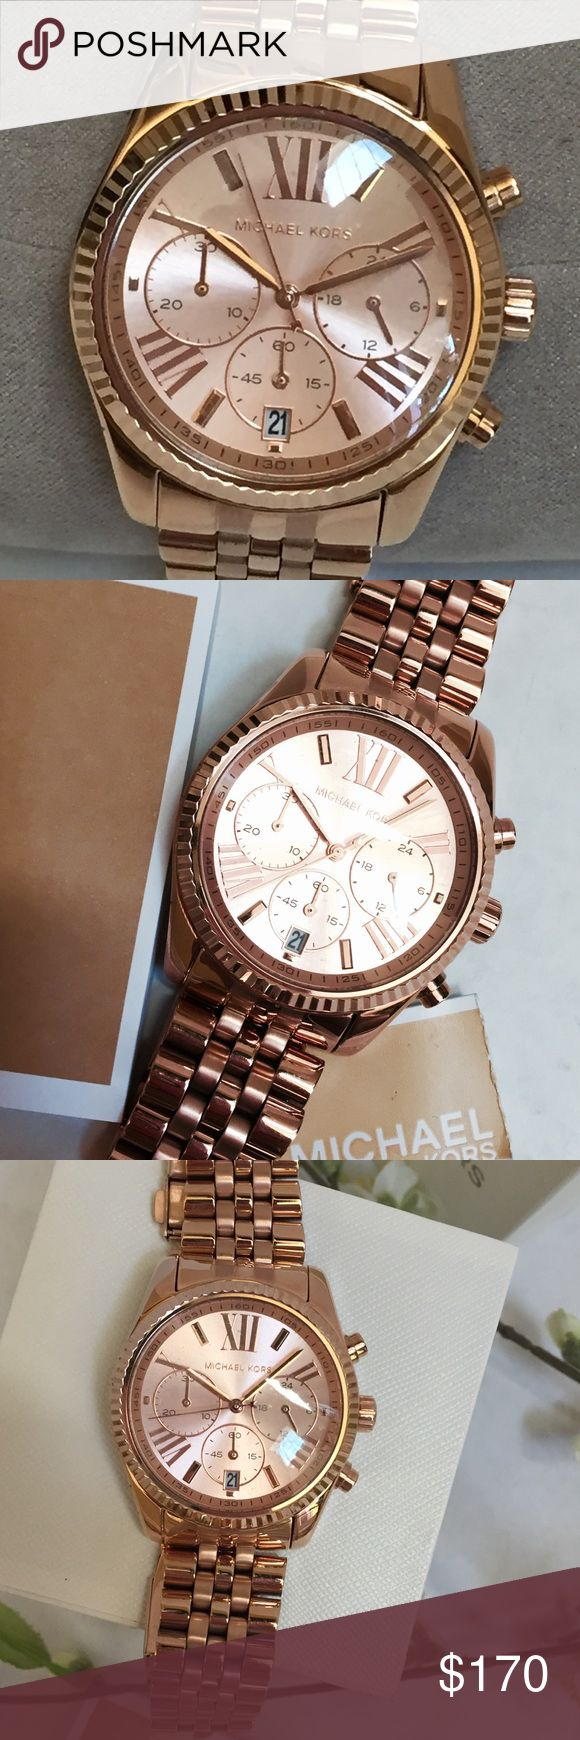 Michael Kors Lexington Watch MK 5569, Rose Gold color with stainless steel band, chronograph dial, 38mm, 10 ATM, large Roman numerals, absolutely gorgeous and ready for a new home Michael Kors Accessories Watches